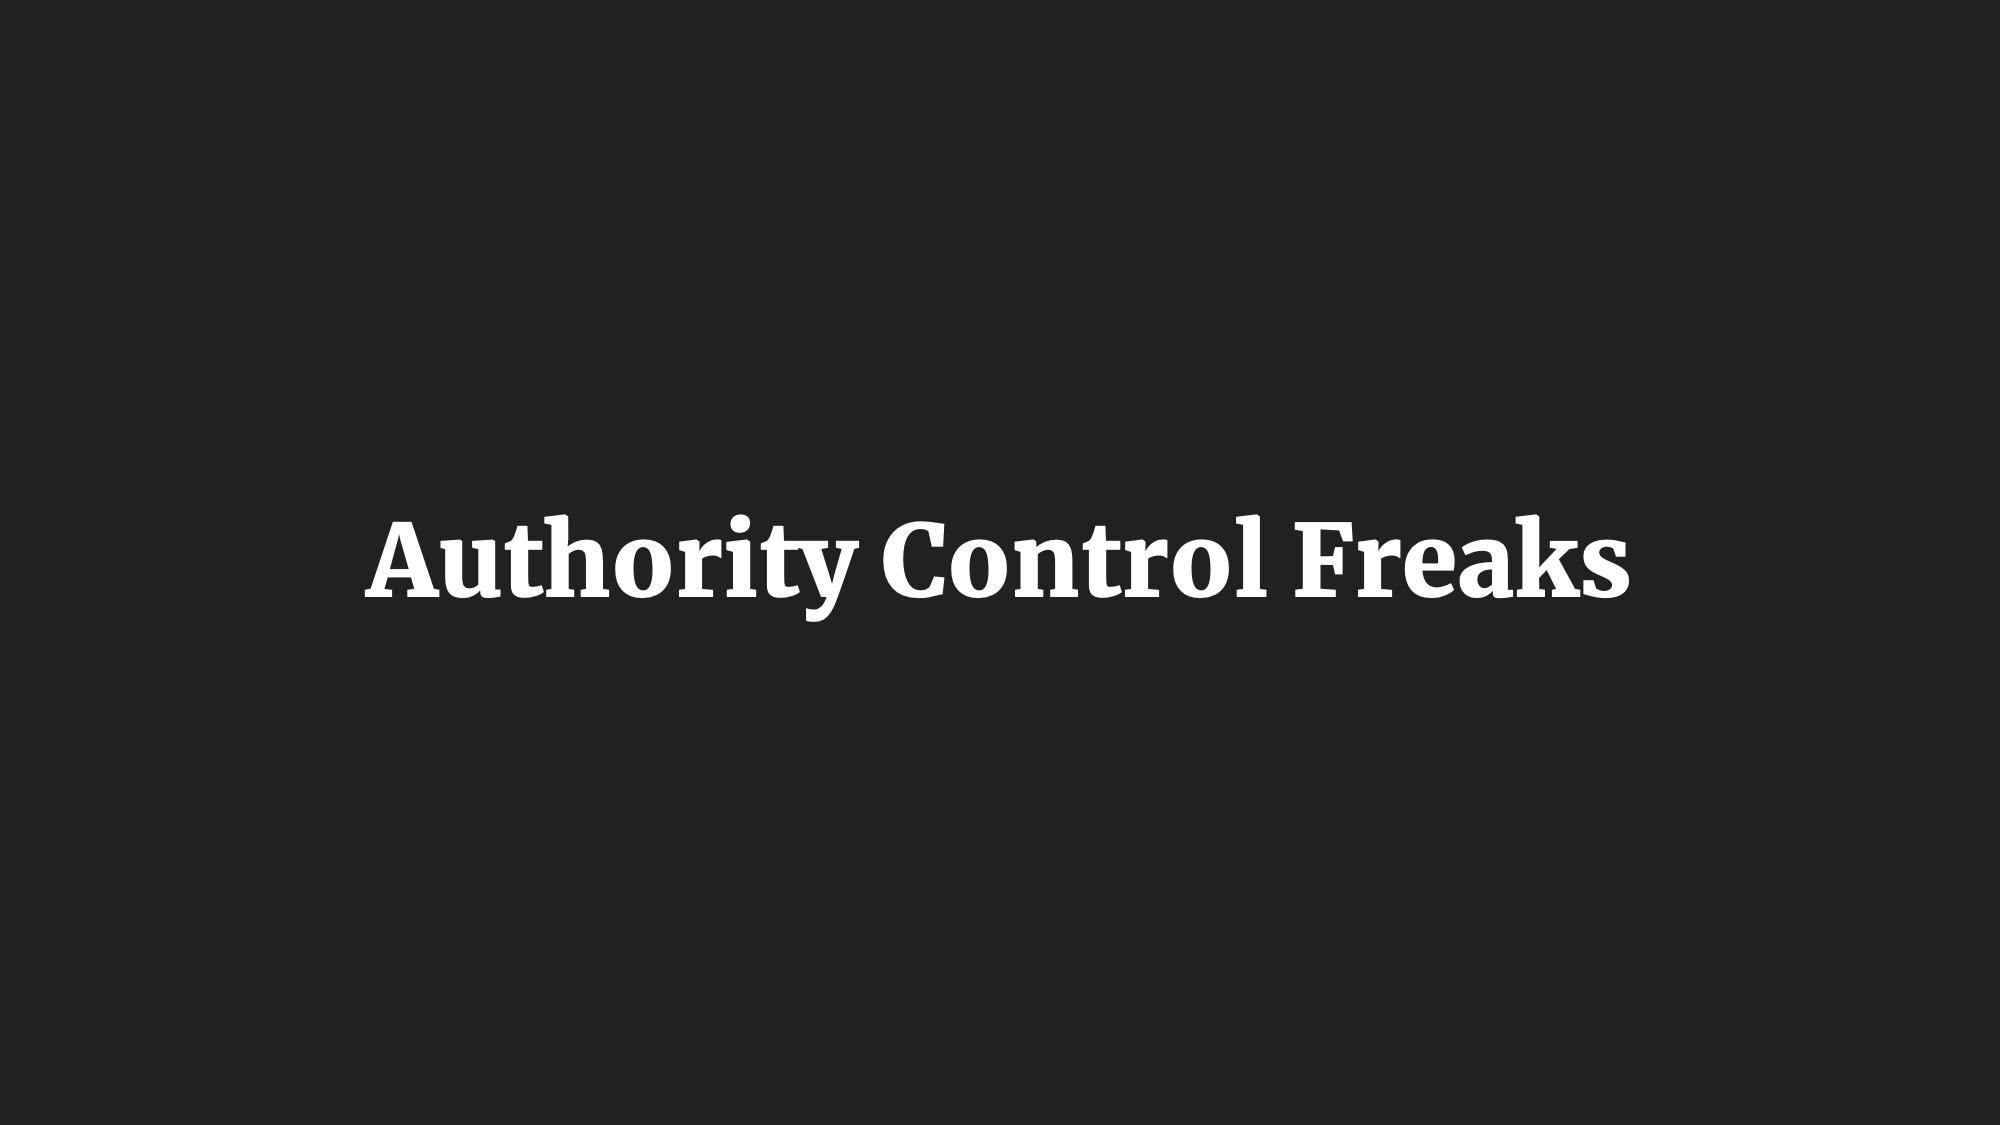 Authority Control Freaks